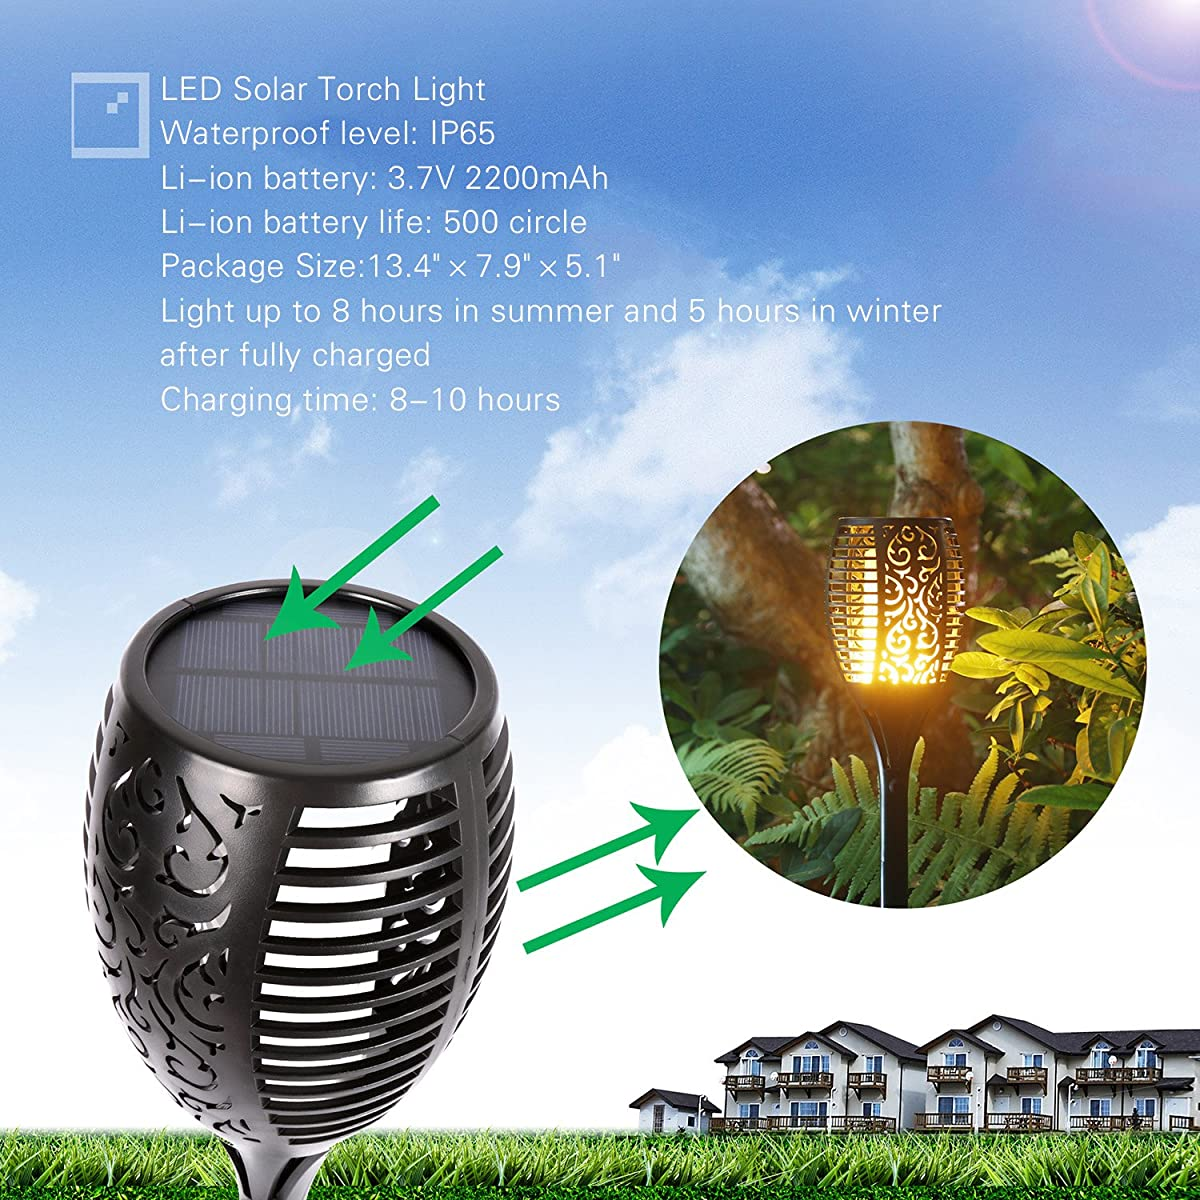 Solar Lights Dancing Flames Balight LED Waterproof Wireless Flickering Torches Lantern Outdoor for Garden Patio Yard Driveway Pathway Pool (Pack of 2)